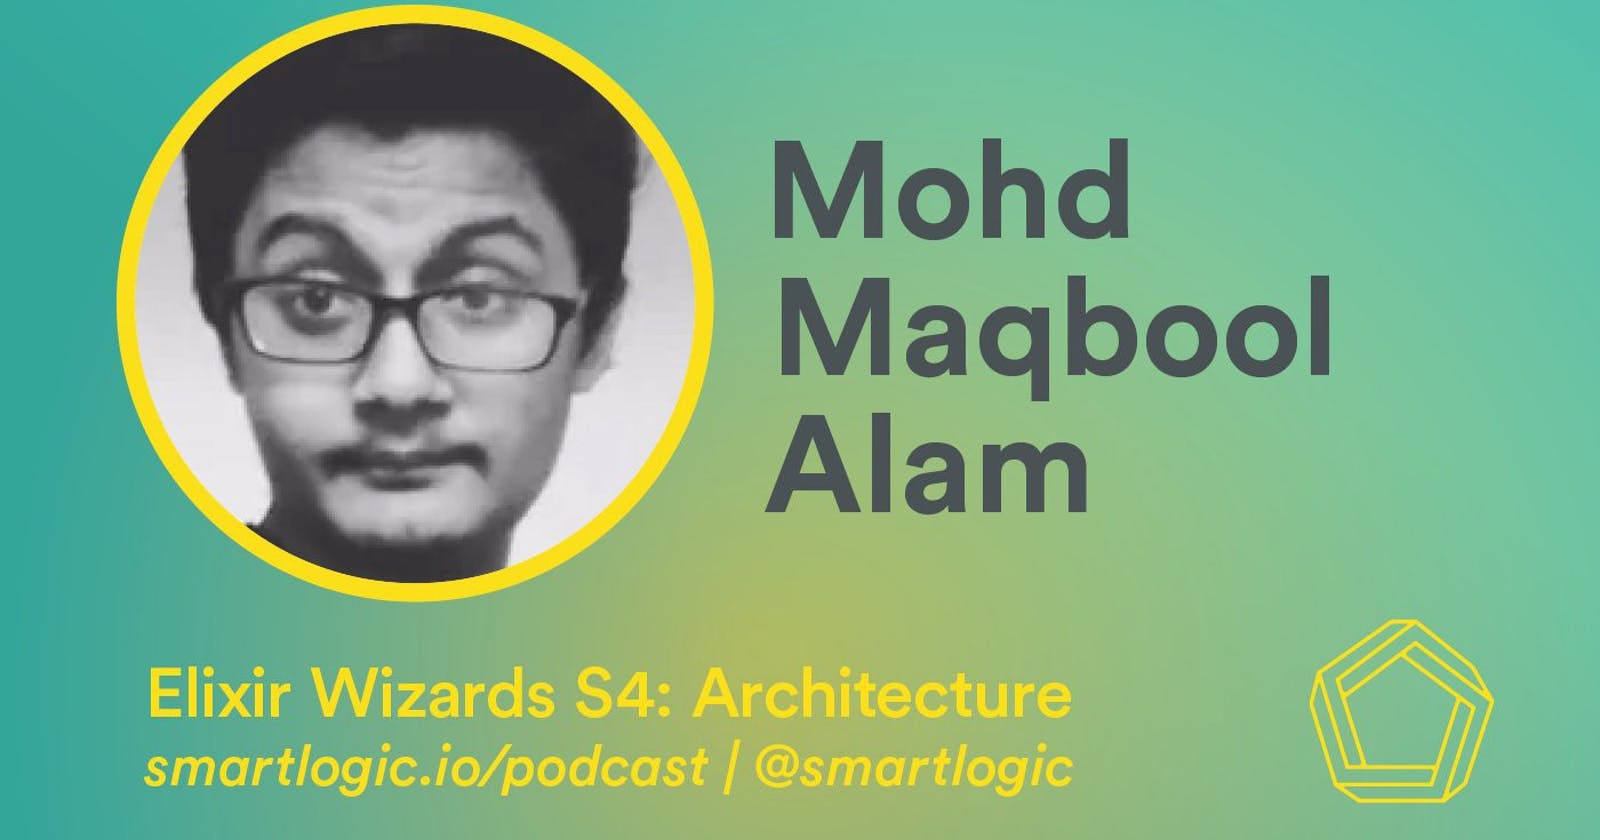 Maqbool on System and Application Architecture @ Elixir Wizards Podcast